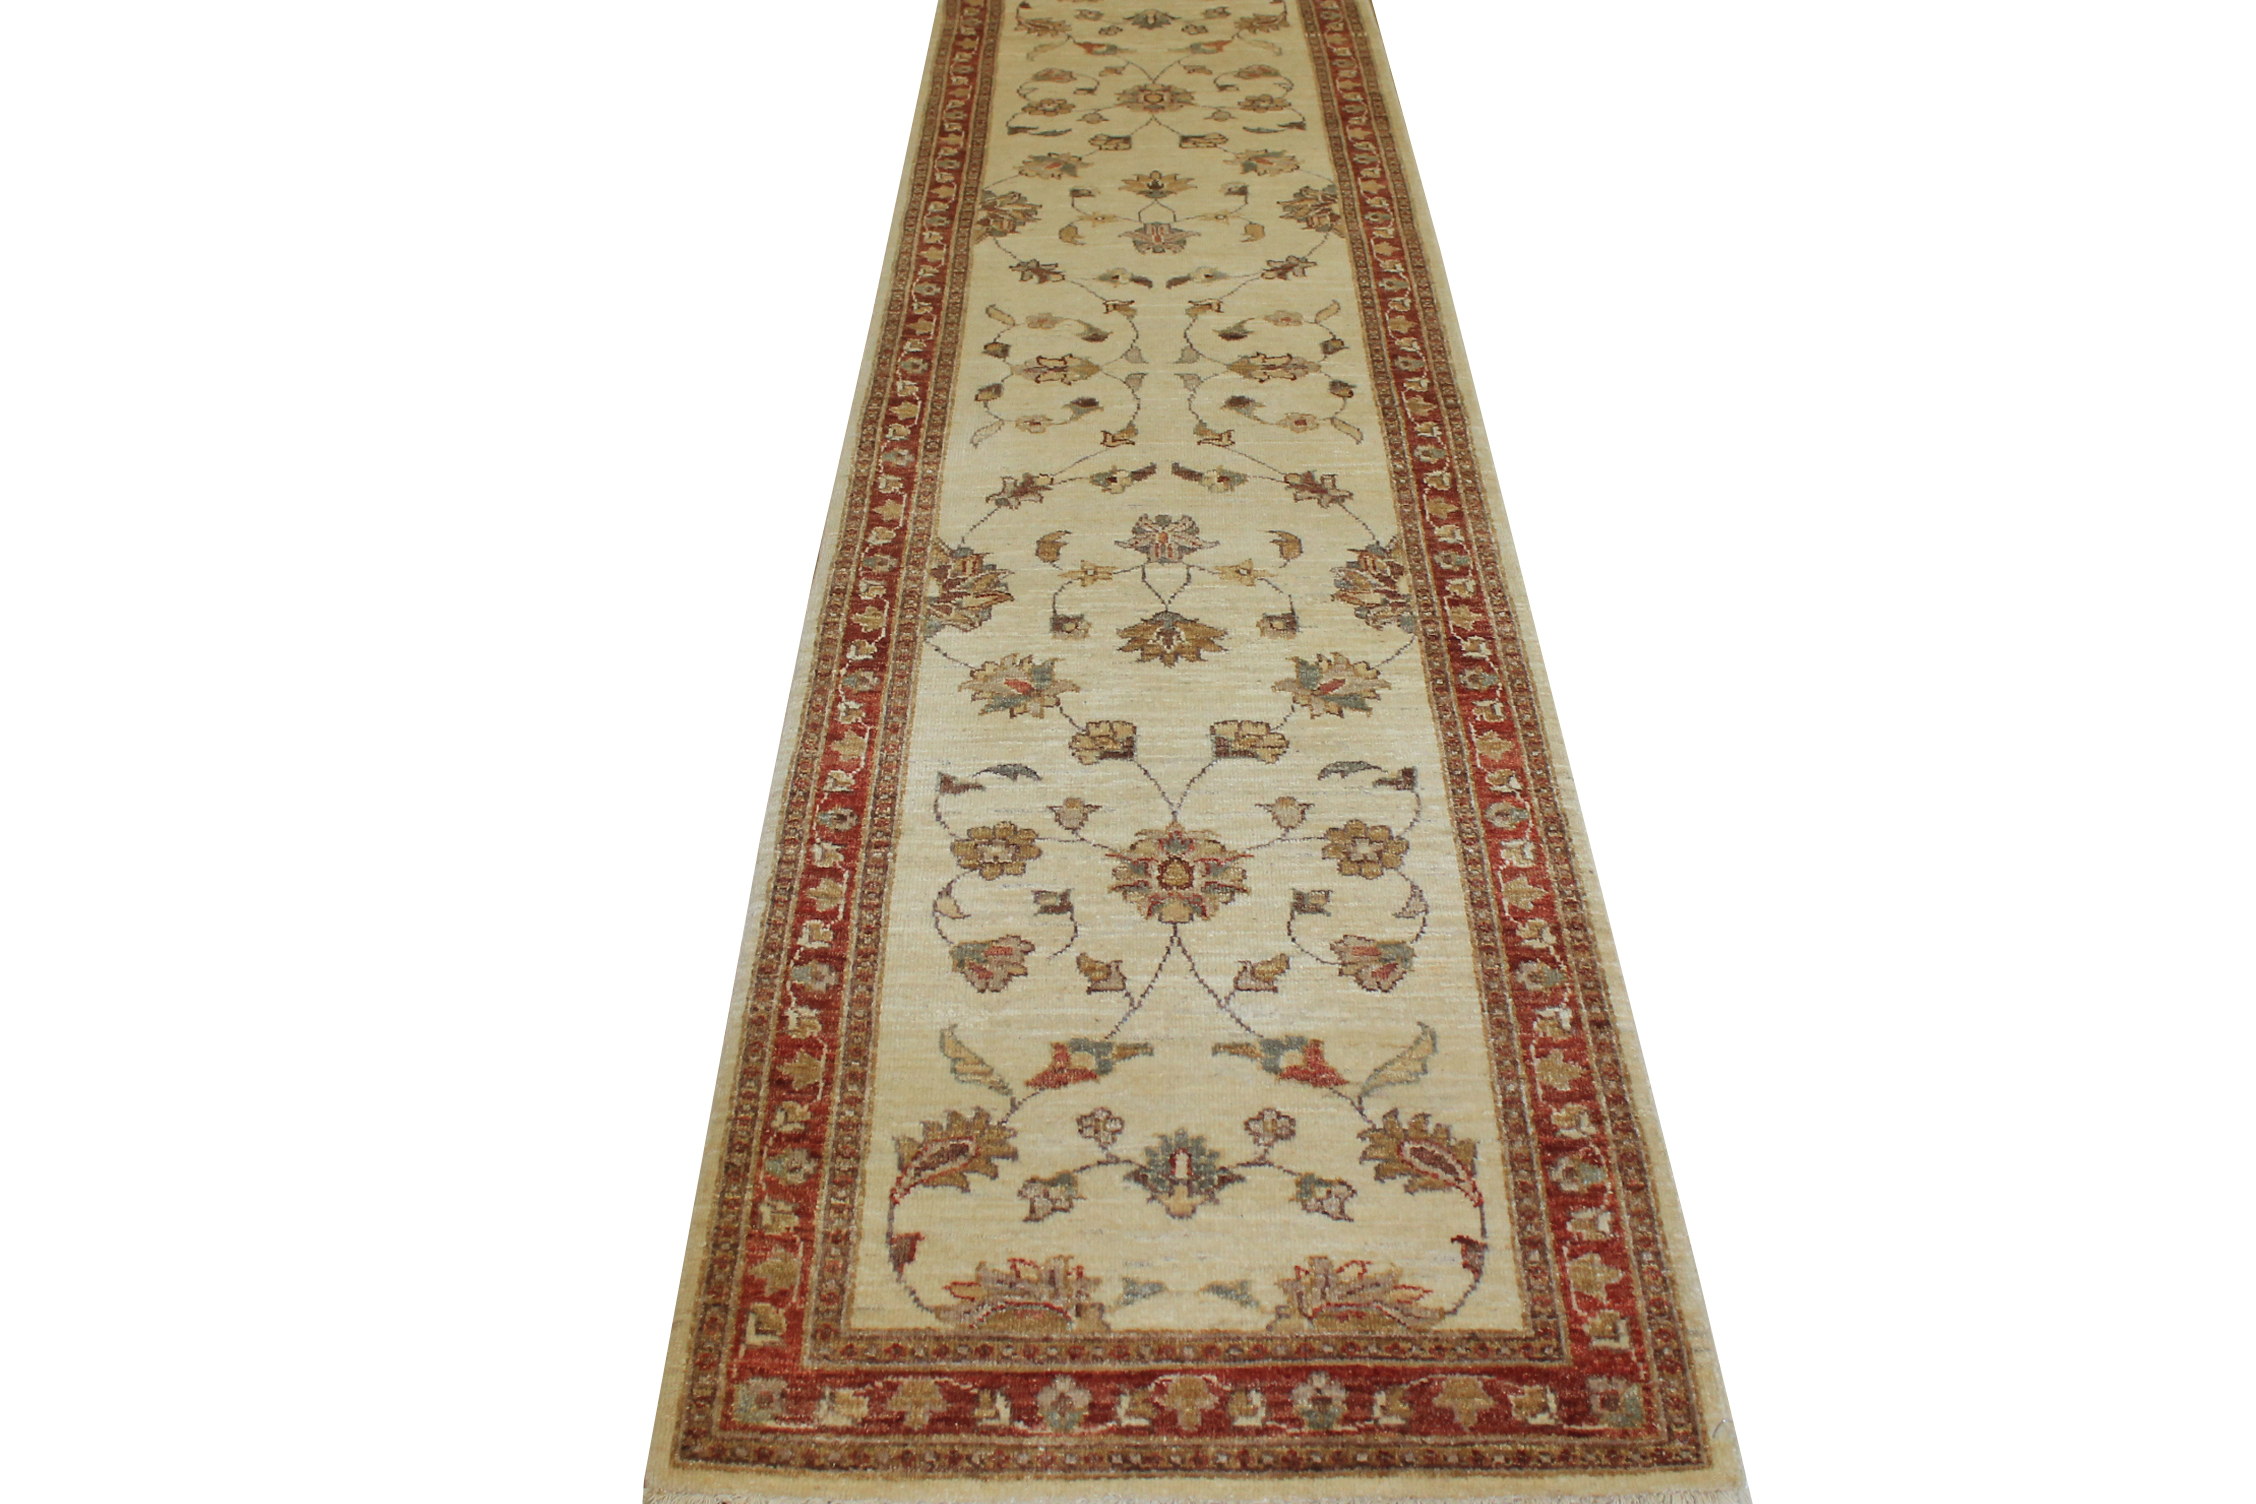 10 ft. Runner Peshawar Hand Knotted Wool Area Rug - MR11780